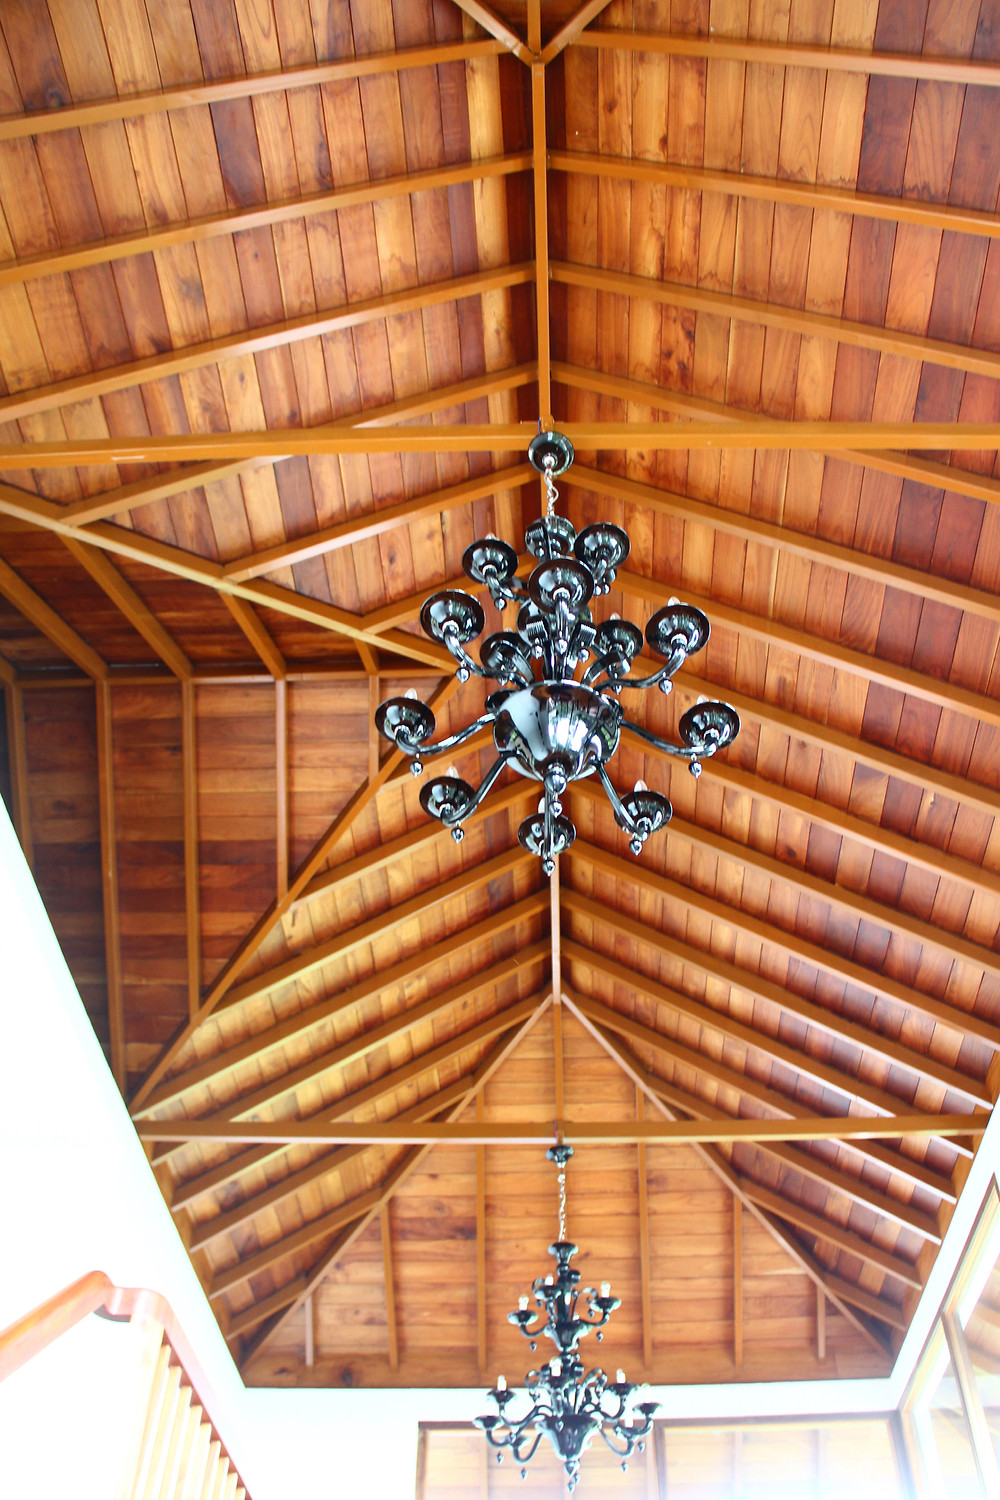 Timber ceiling of the Wayanad House.